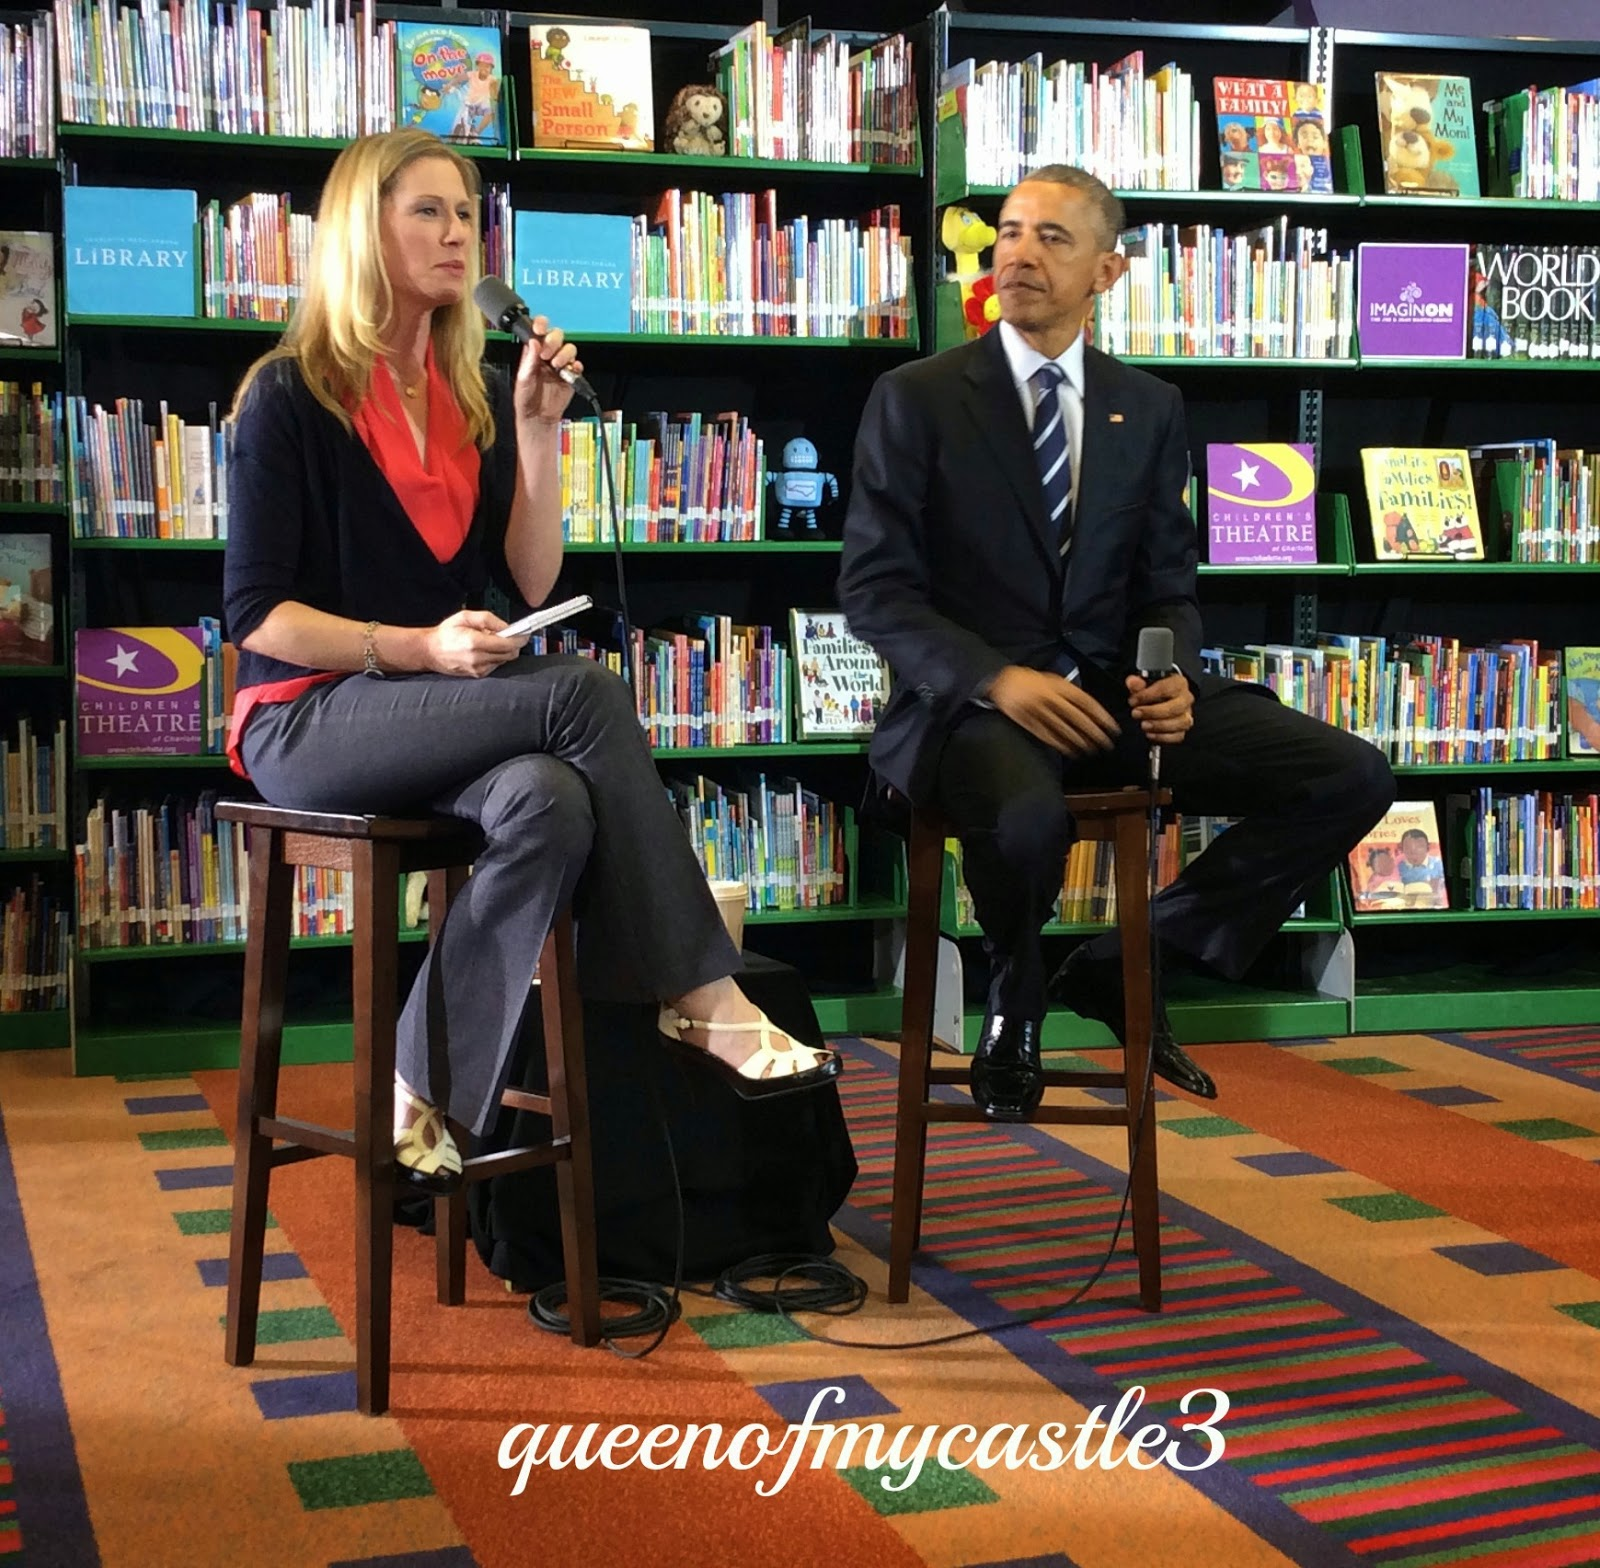 Lisa Stone interviews Barack Obama